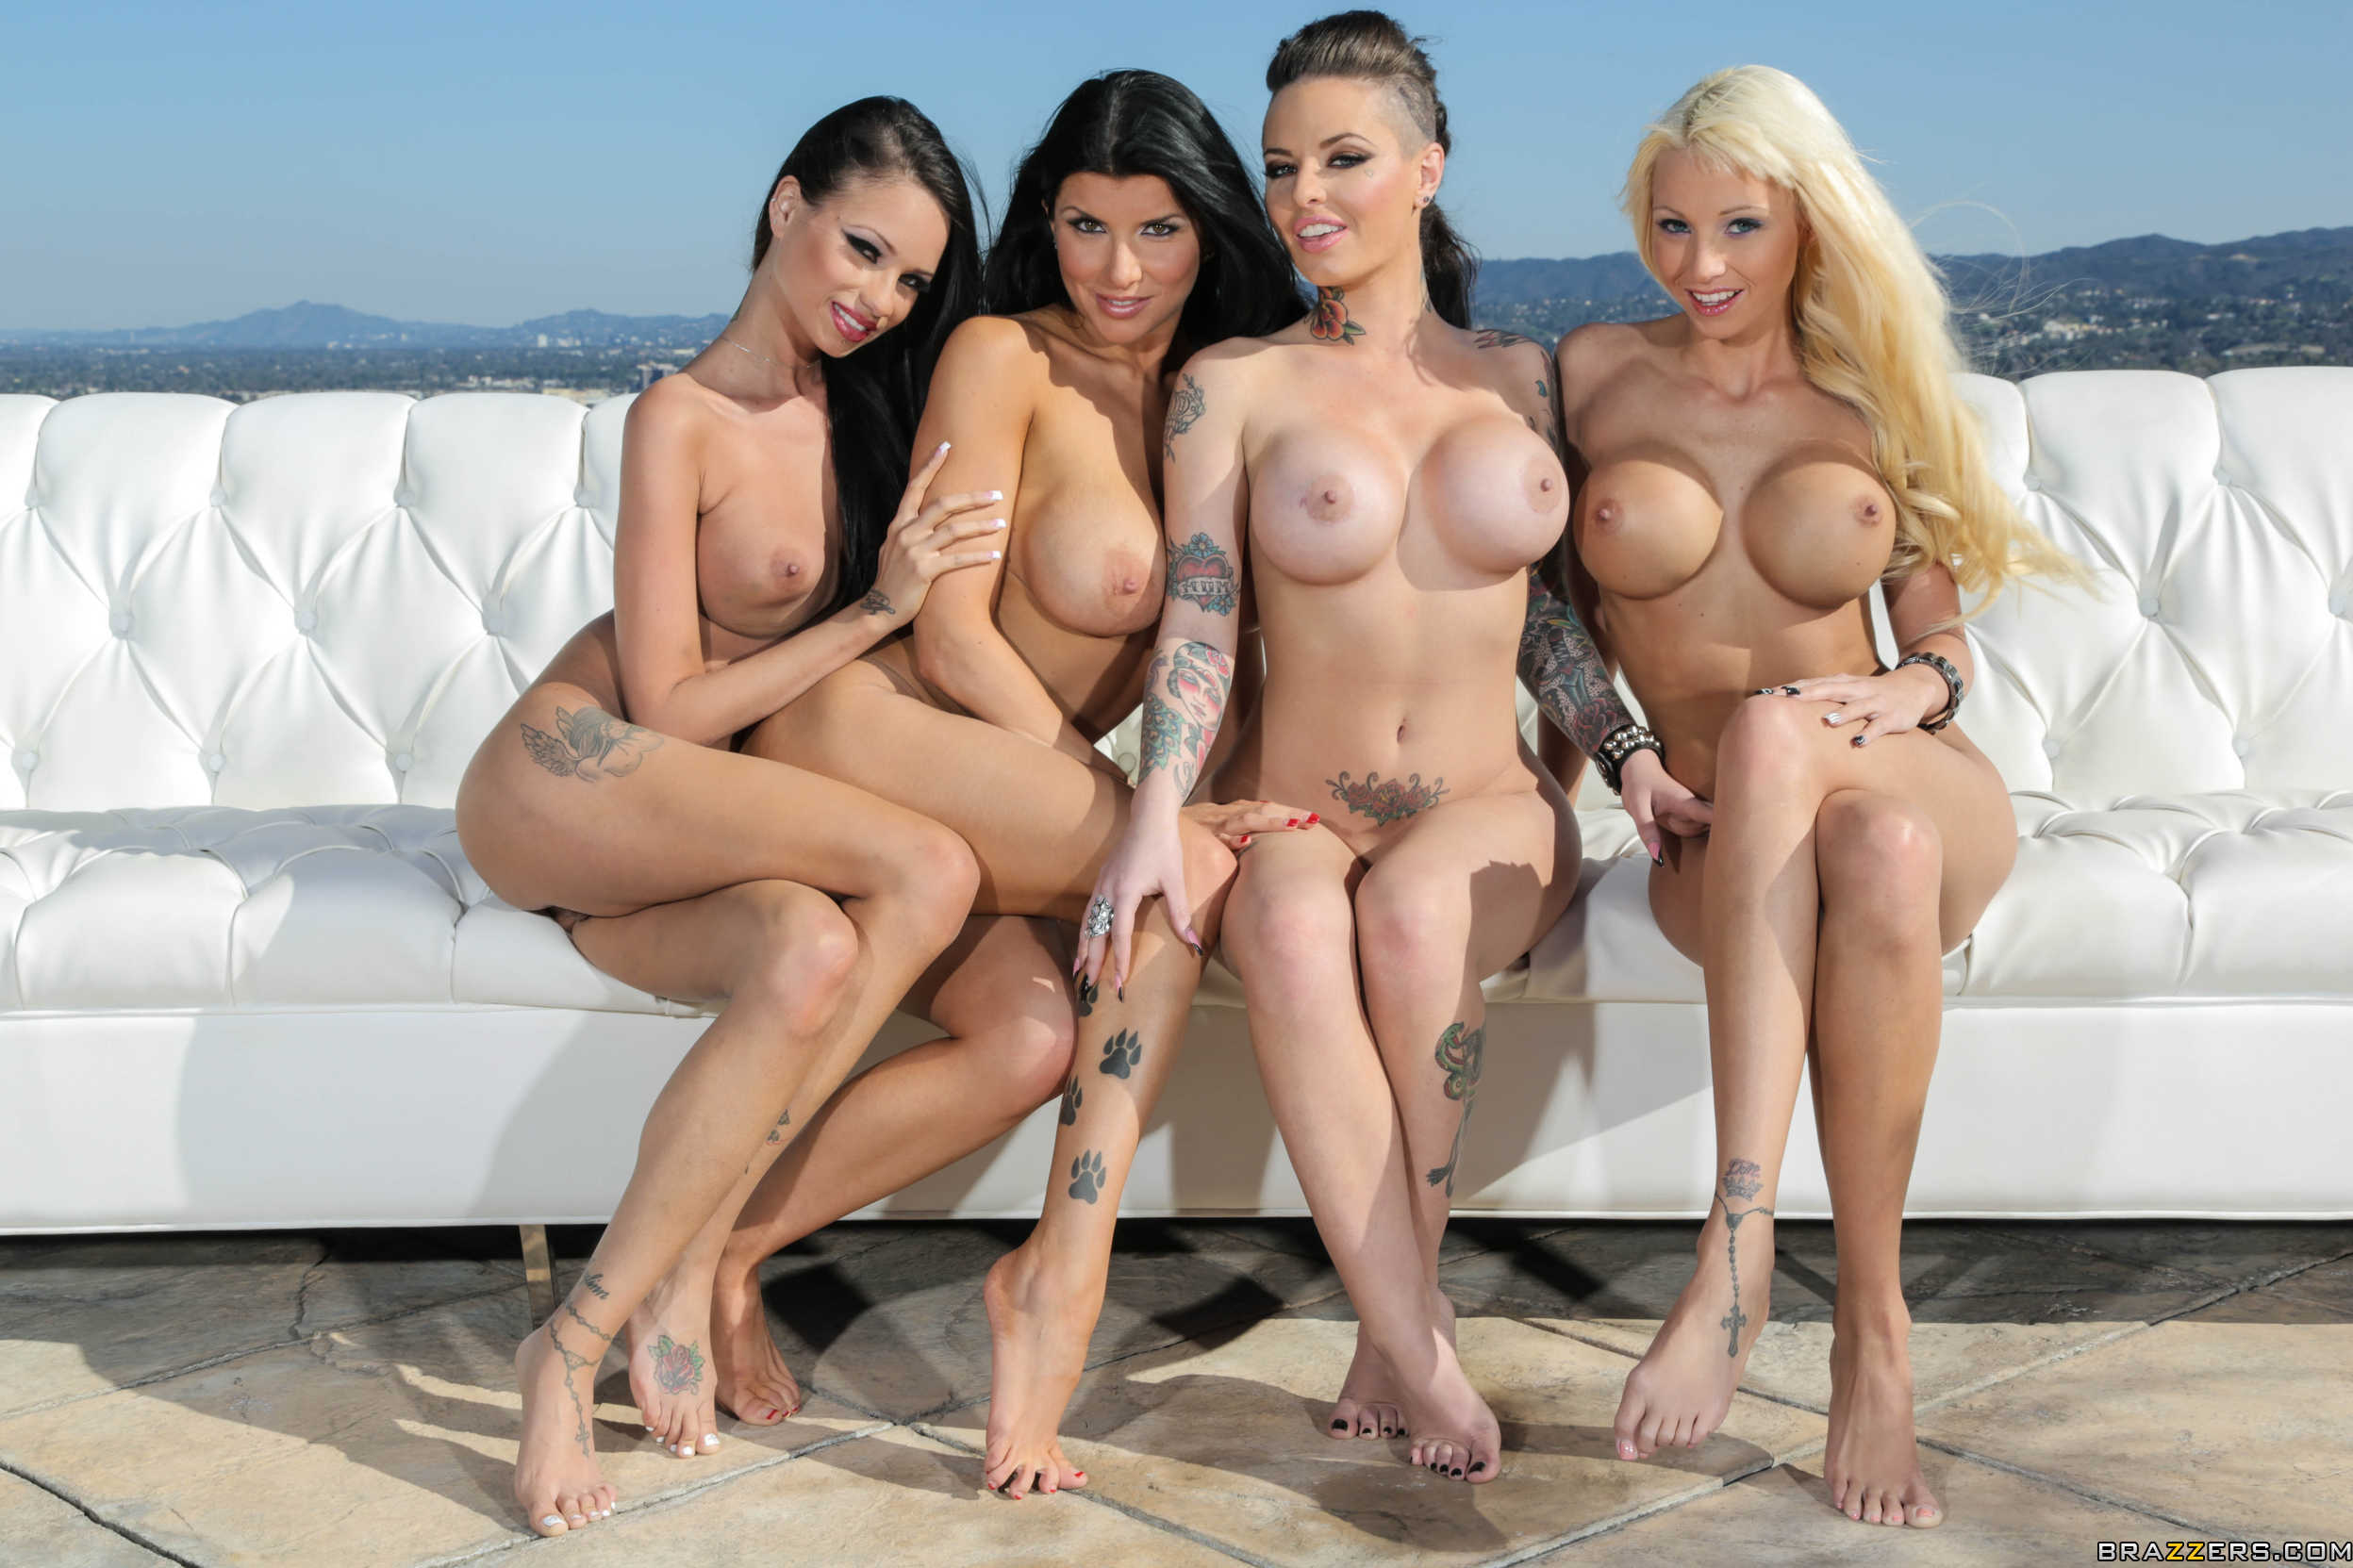 girls Nude group of